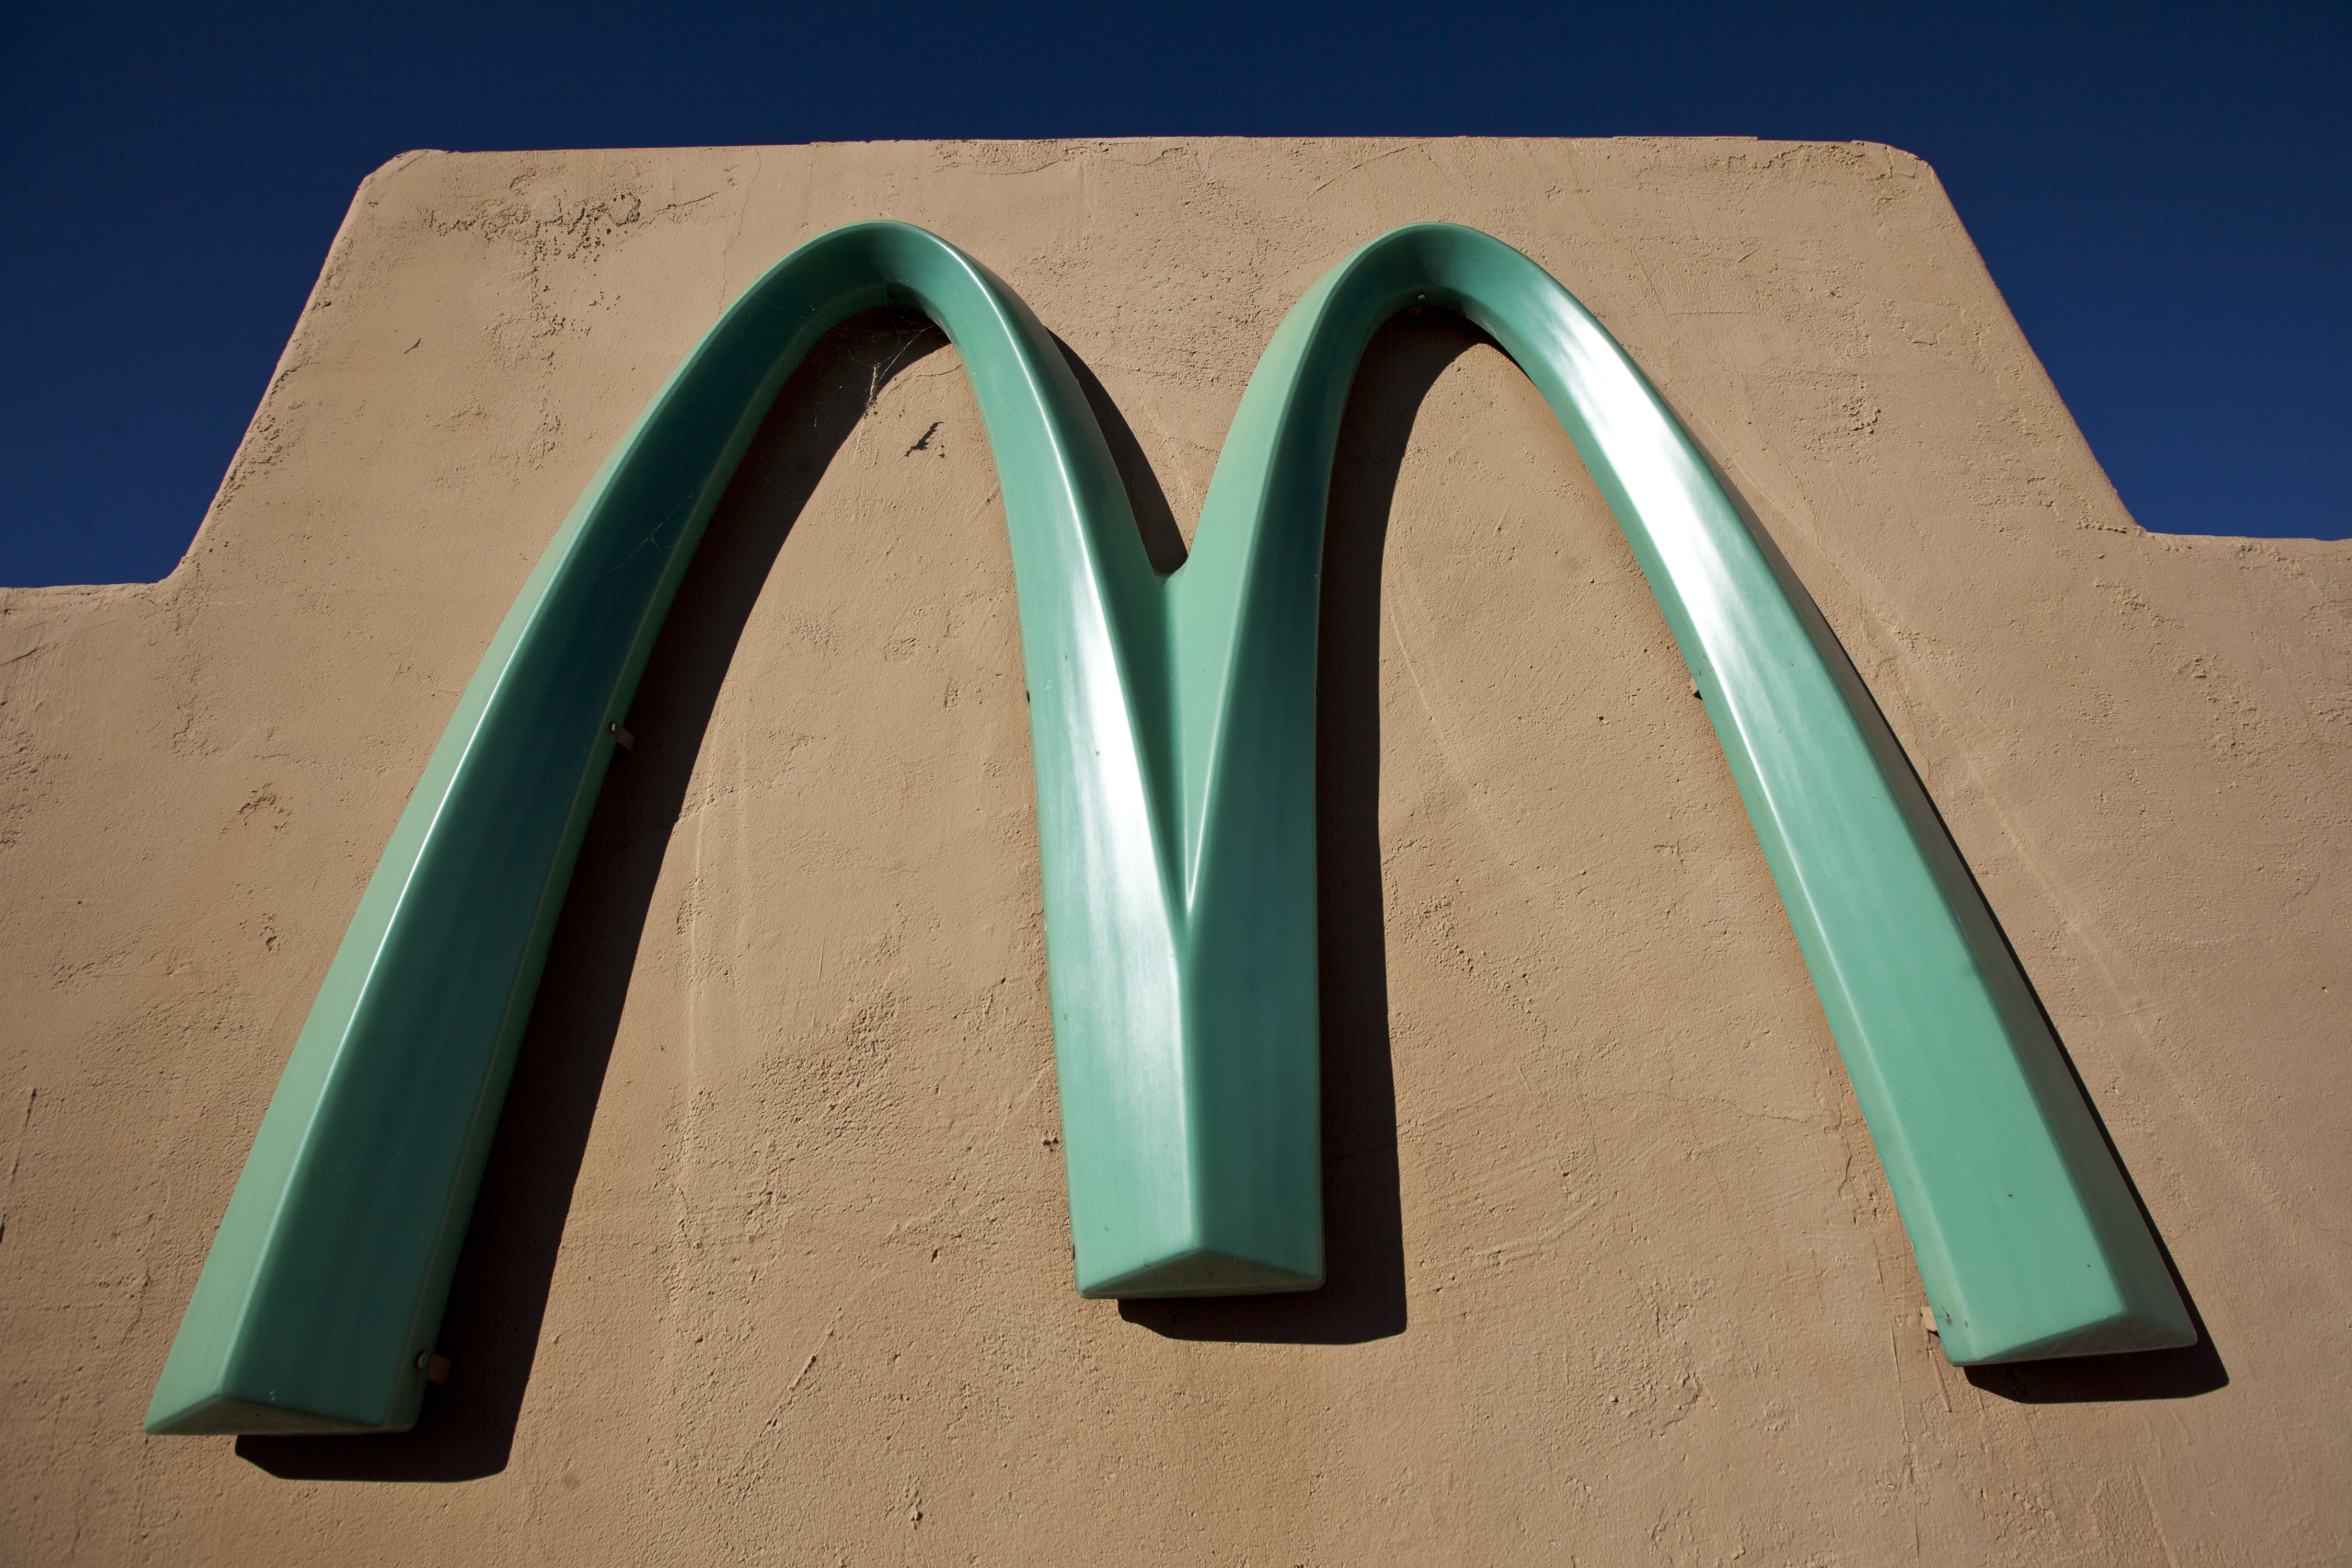 The Strange Reason This One McDonald's Has Turquoise Arches